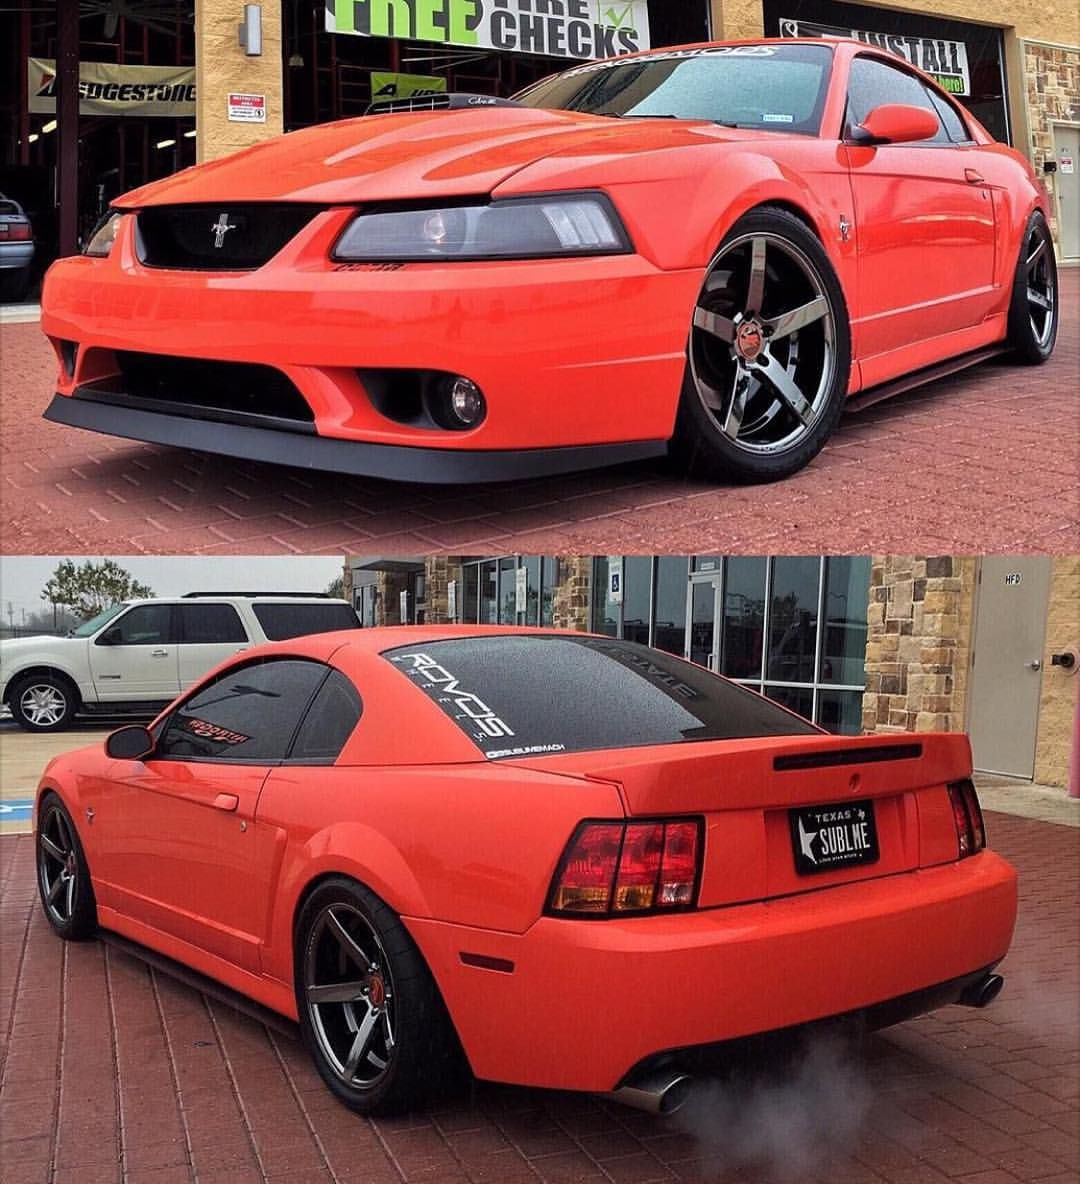 2 686 Likes 20 Comments Musclecarspictures Musclecarspics On Instagram Pic By Owner Sublimemach Wheels By Ro Mustang Mach 1 Mustang Saleen Mustang